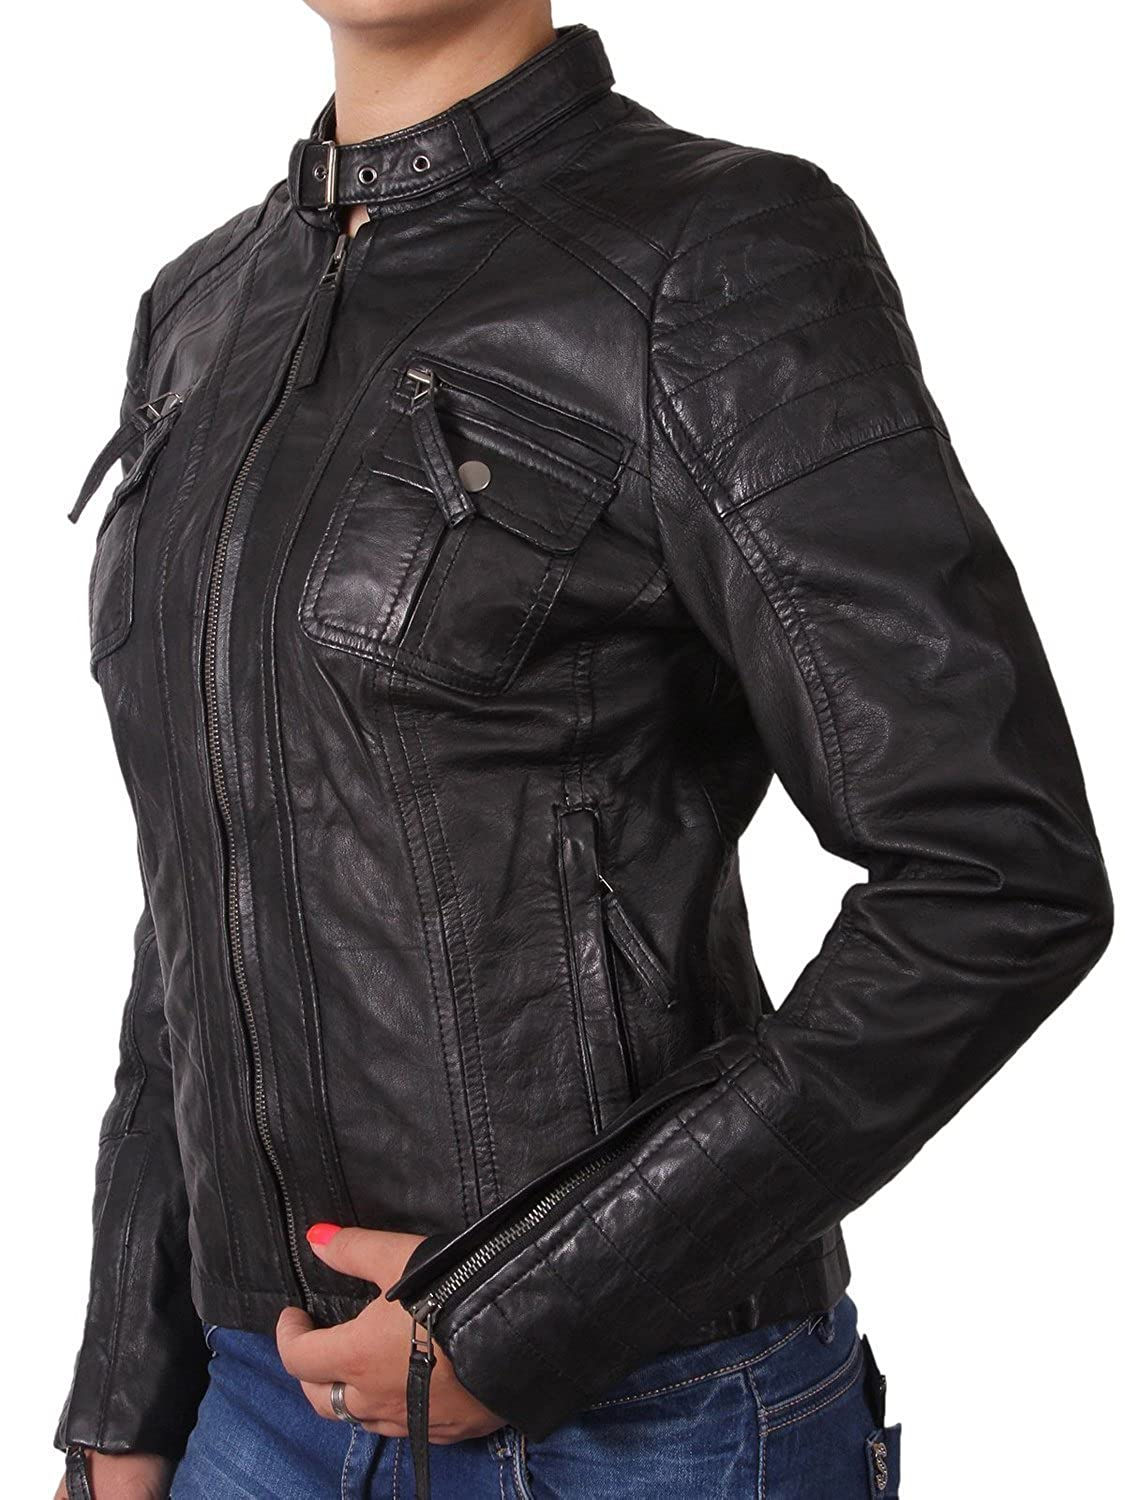 WOMENS LADIES LEATHER BIKER JACKET MOTORCYCLE JACKET REAL LEATHER ...